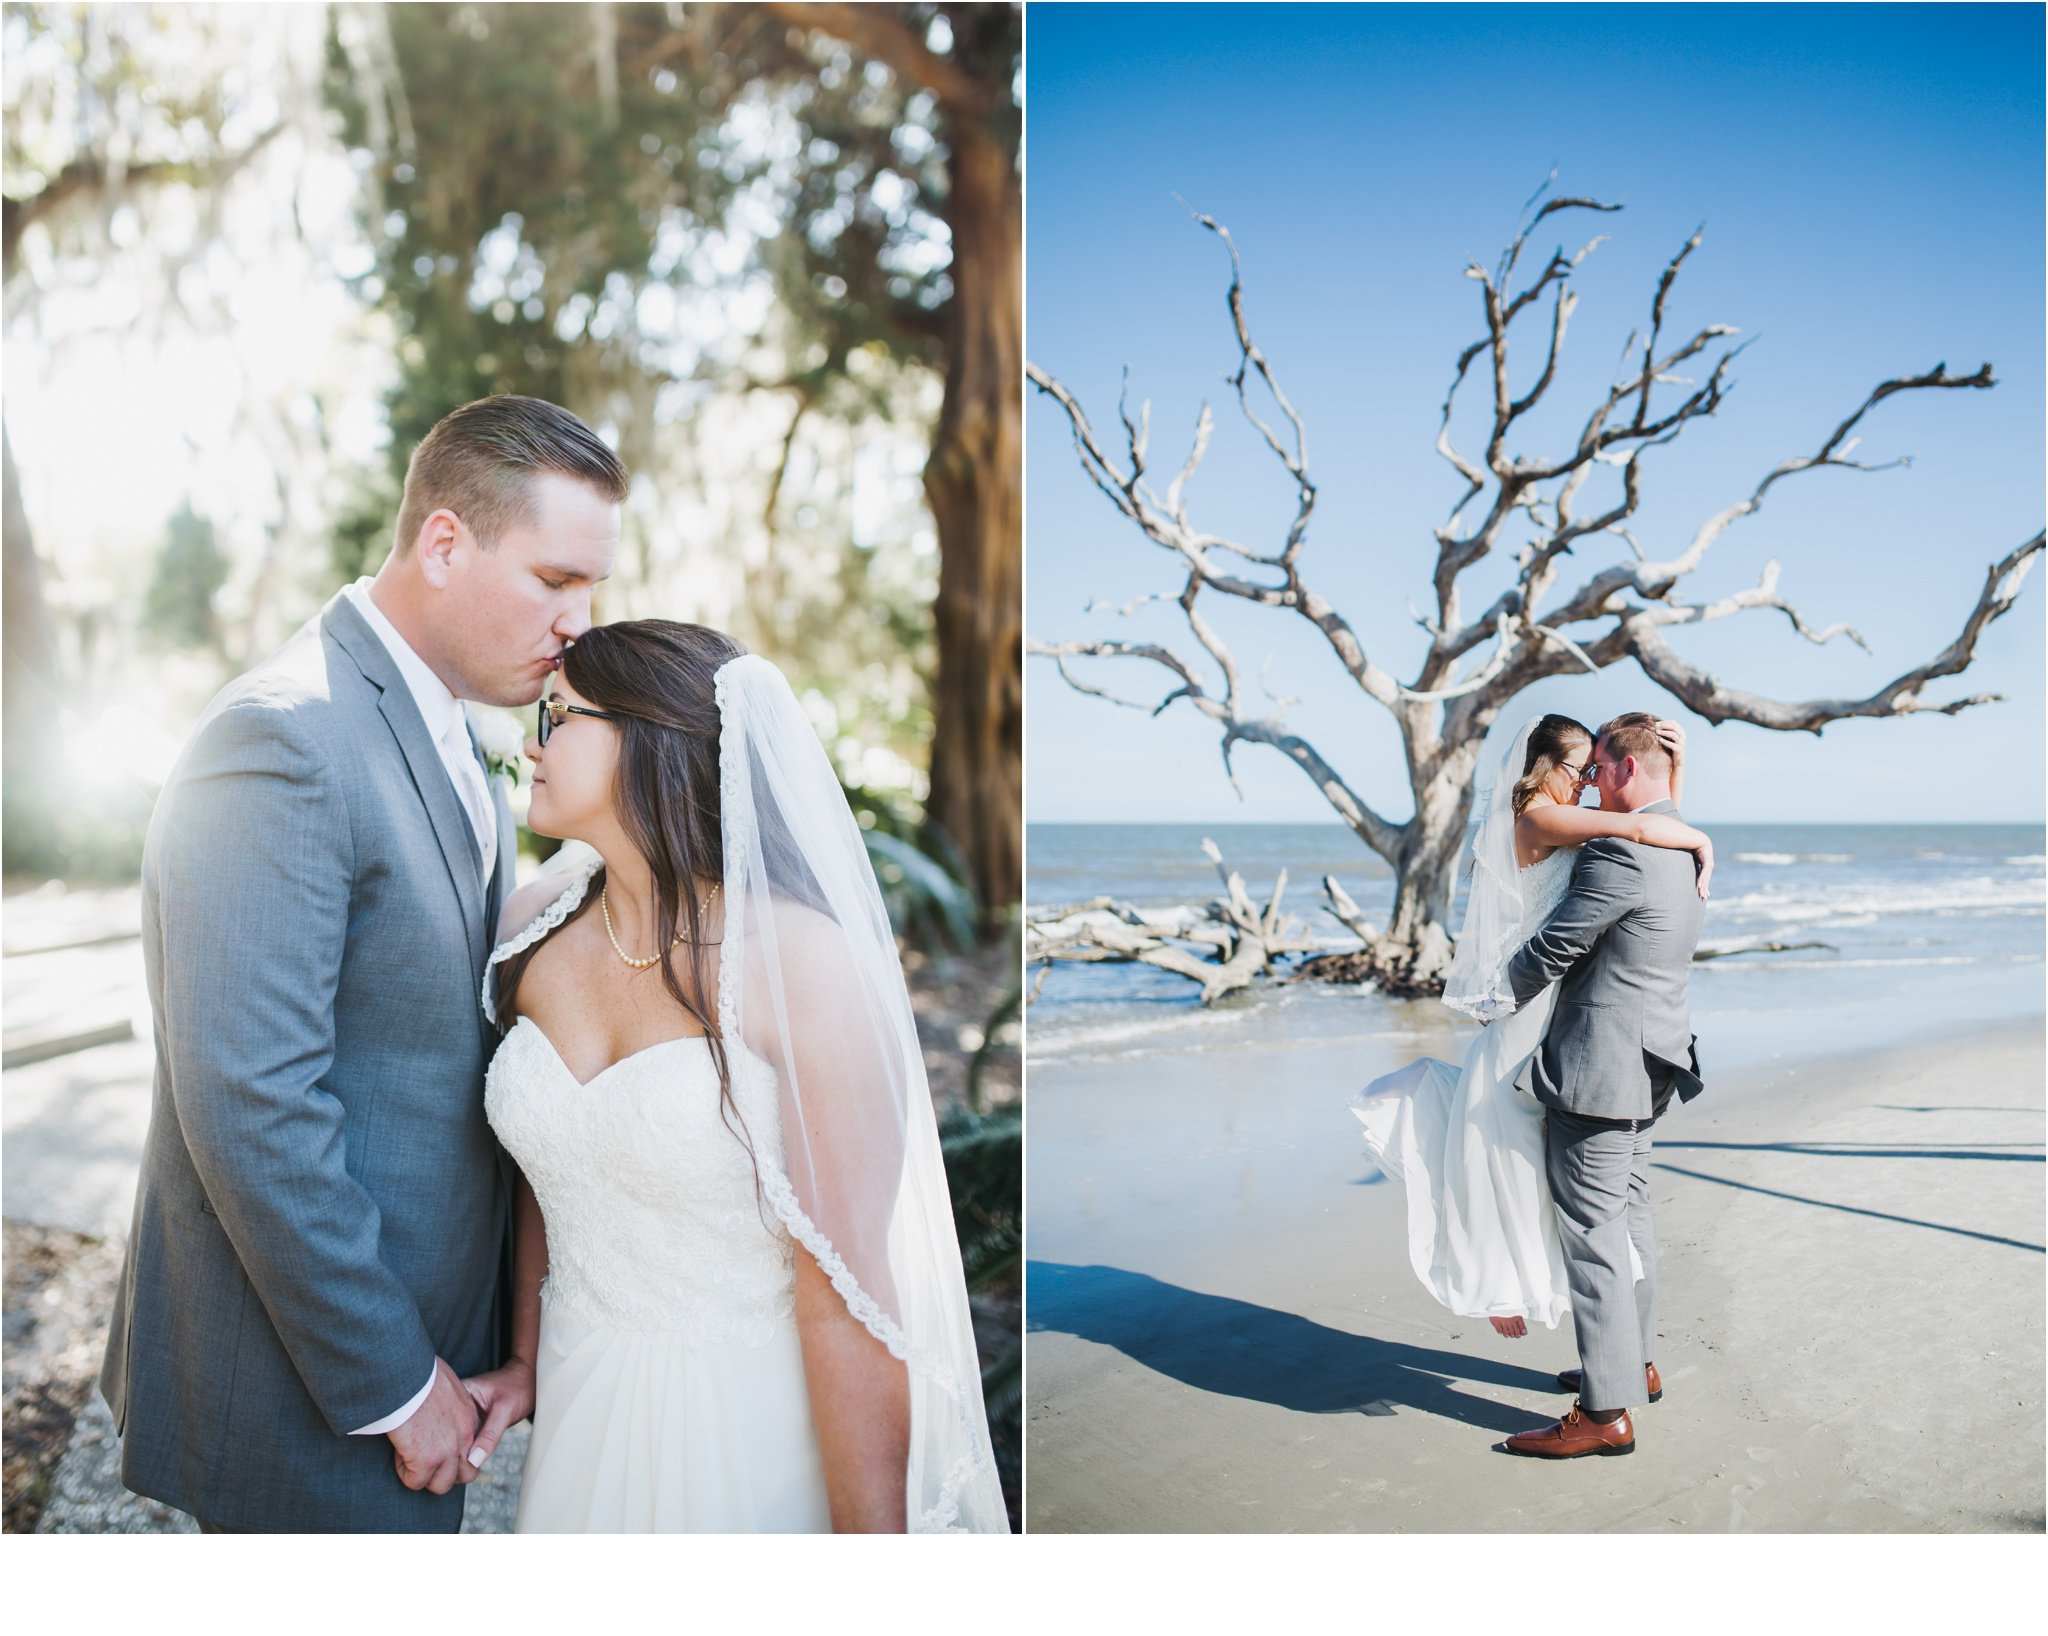 Rainey_Gregg_Photography_St._Simons_Island_Georgia_California_Wedding_Portrait_Photography_1776.jpg